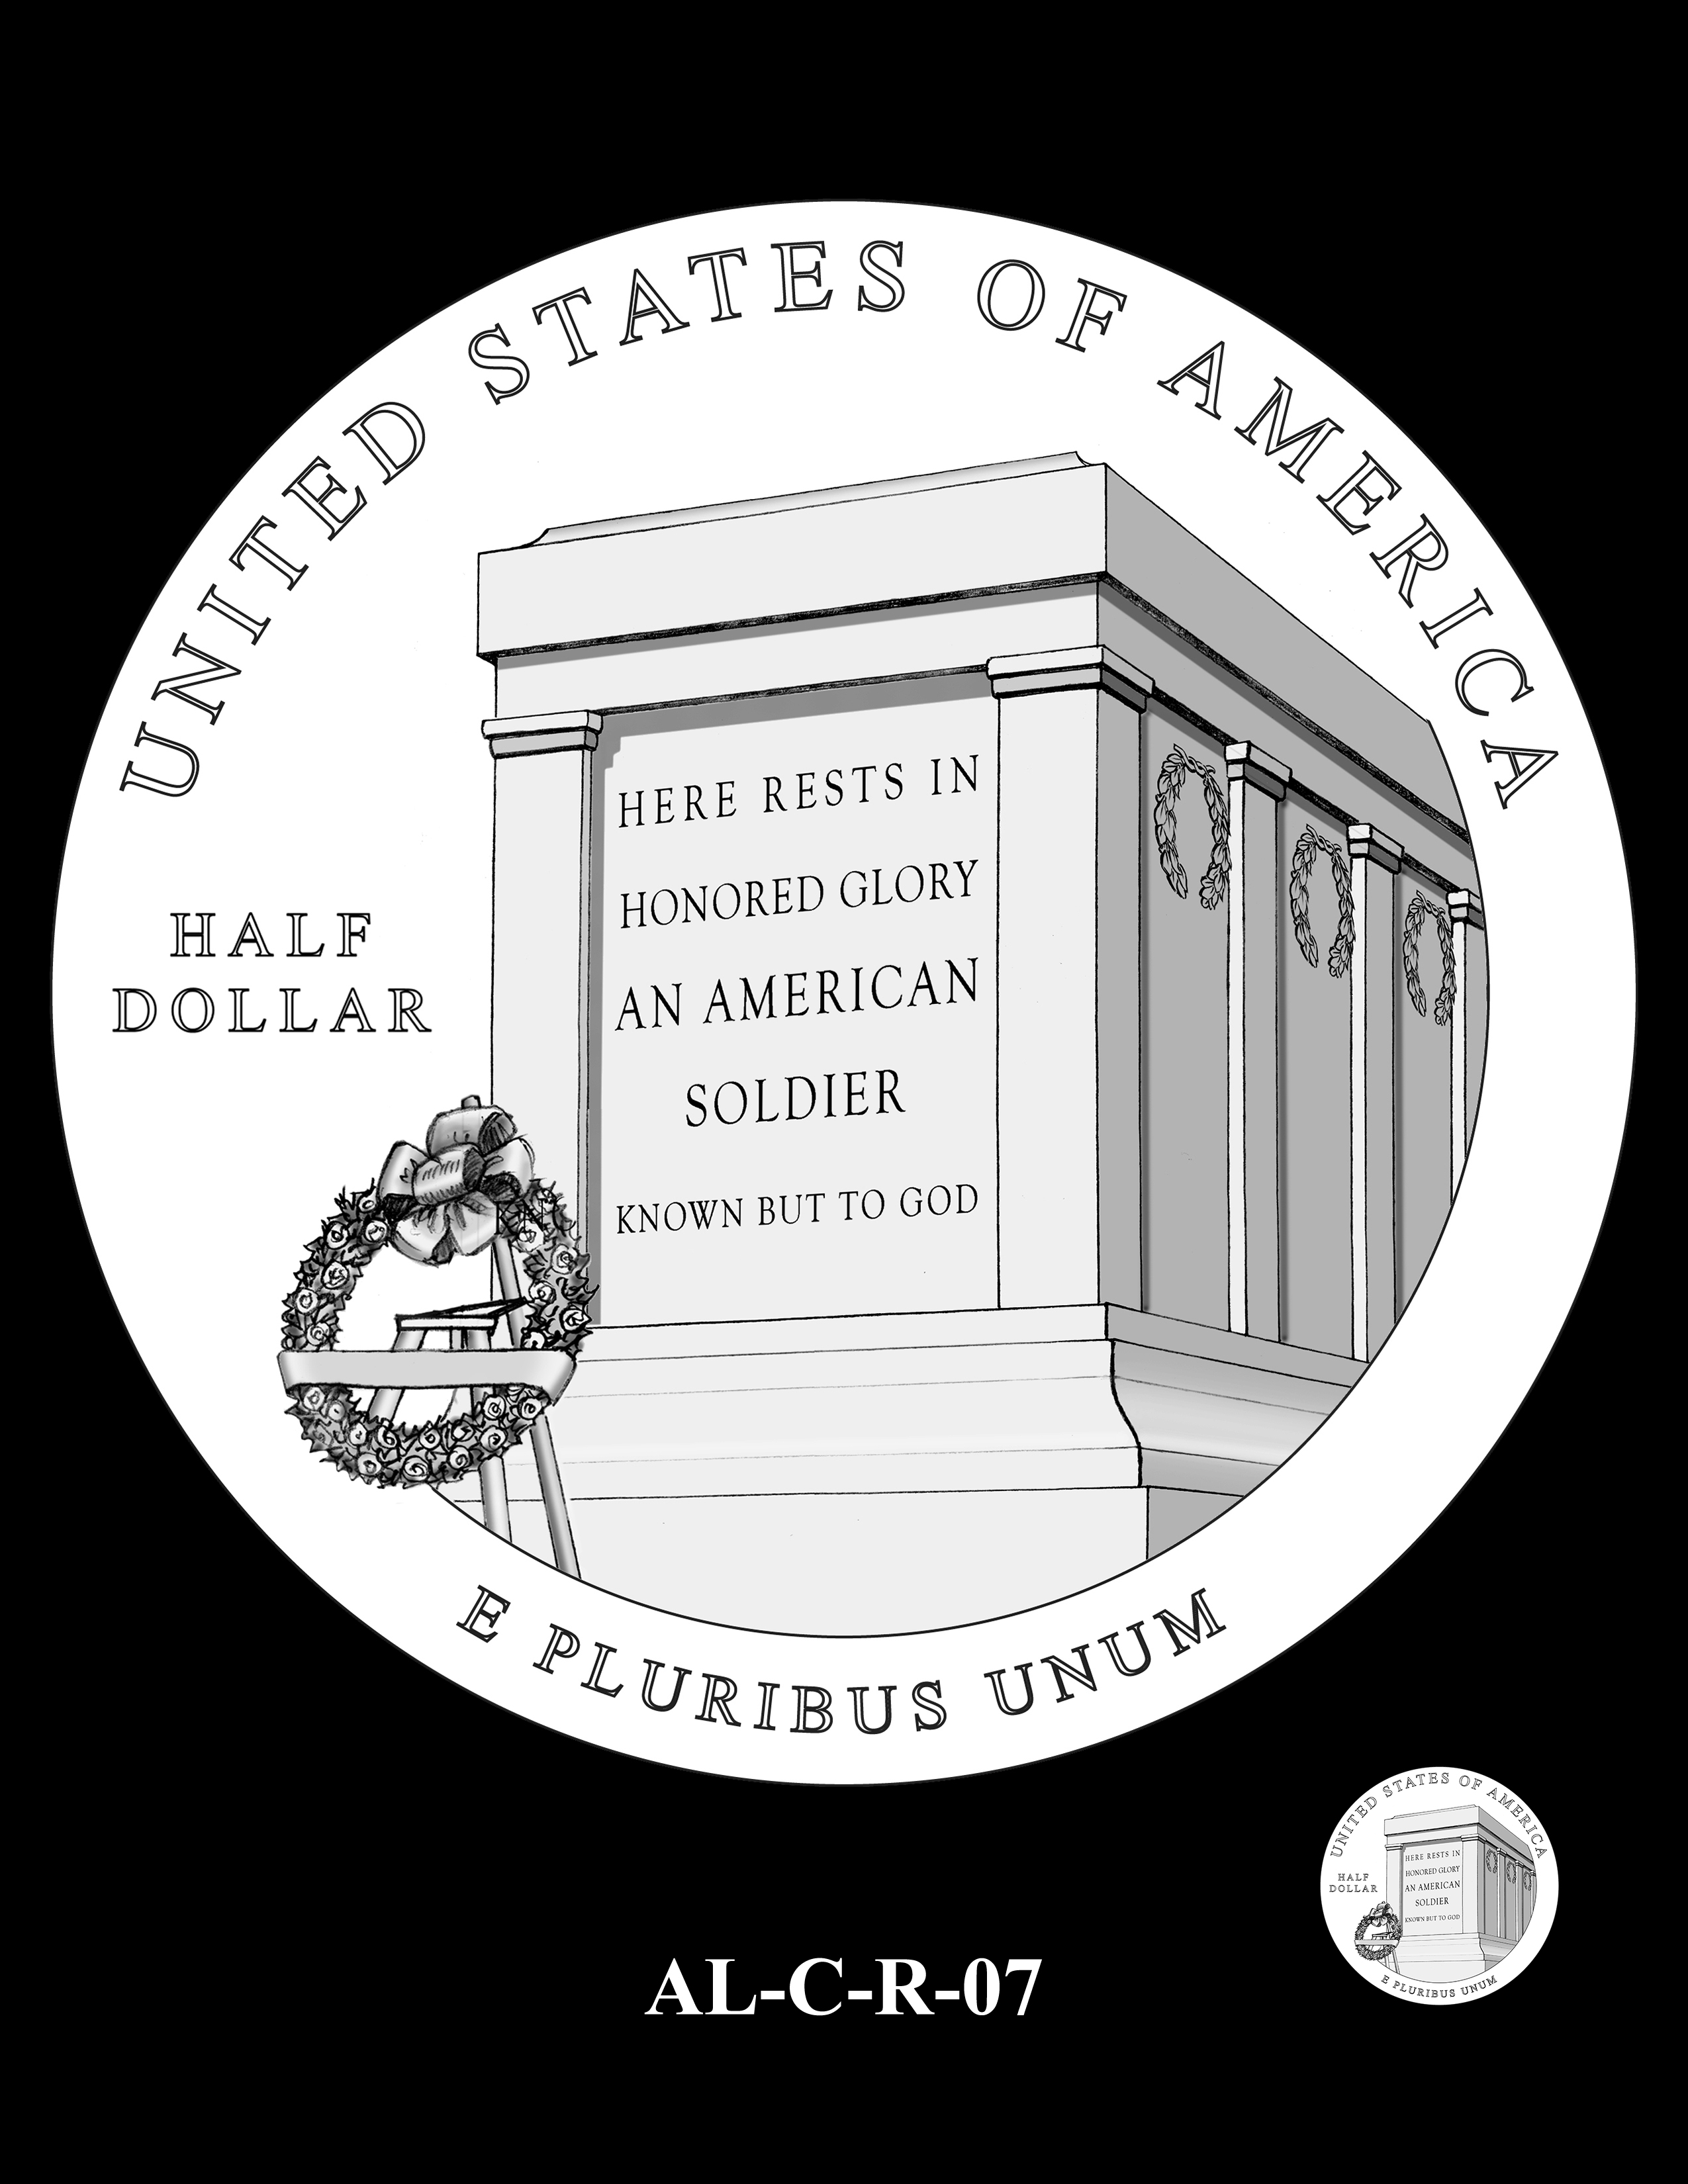 AL-C-R-07 -- 2019 American Legion 100th Anniversary Commemorative Coin Program - Clad Reverse